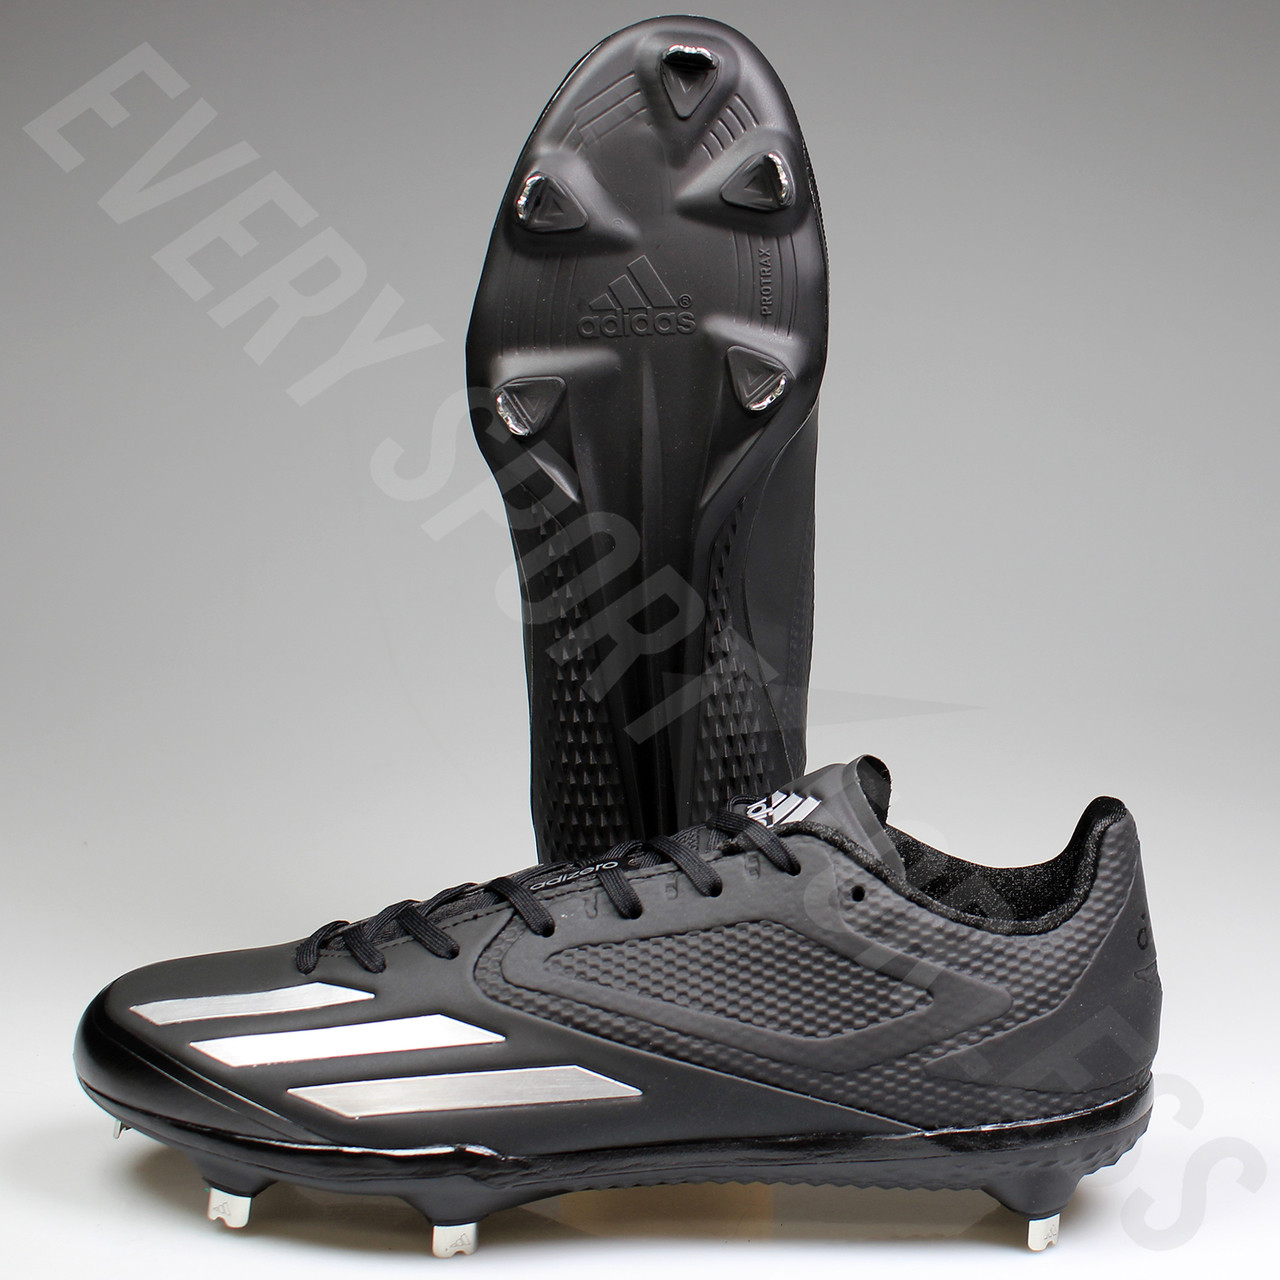 size 40 3e683 716ec ... Adidas Adizero Afterburner 3 Mens Baseball Cleats Q16563 - Black,  Silver ...